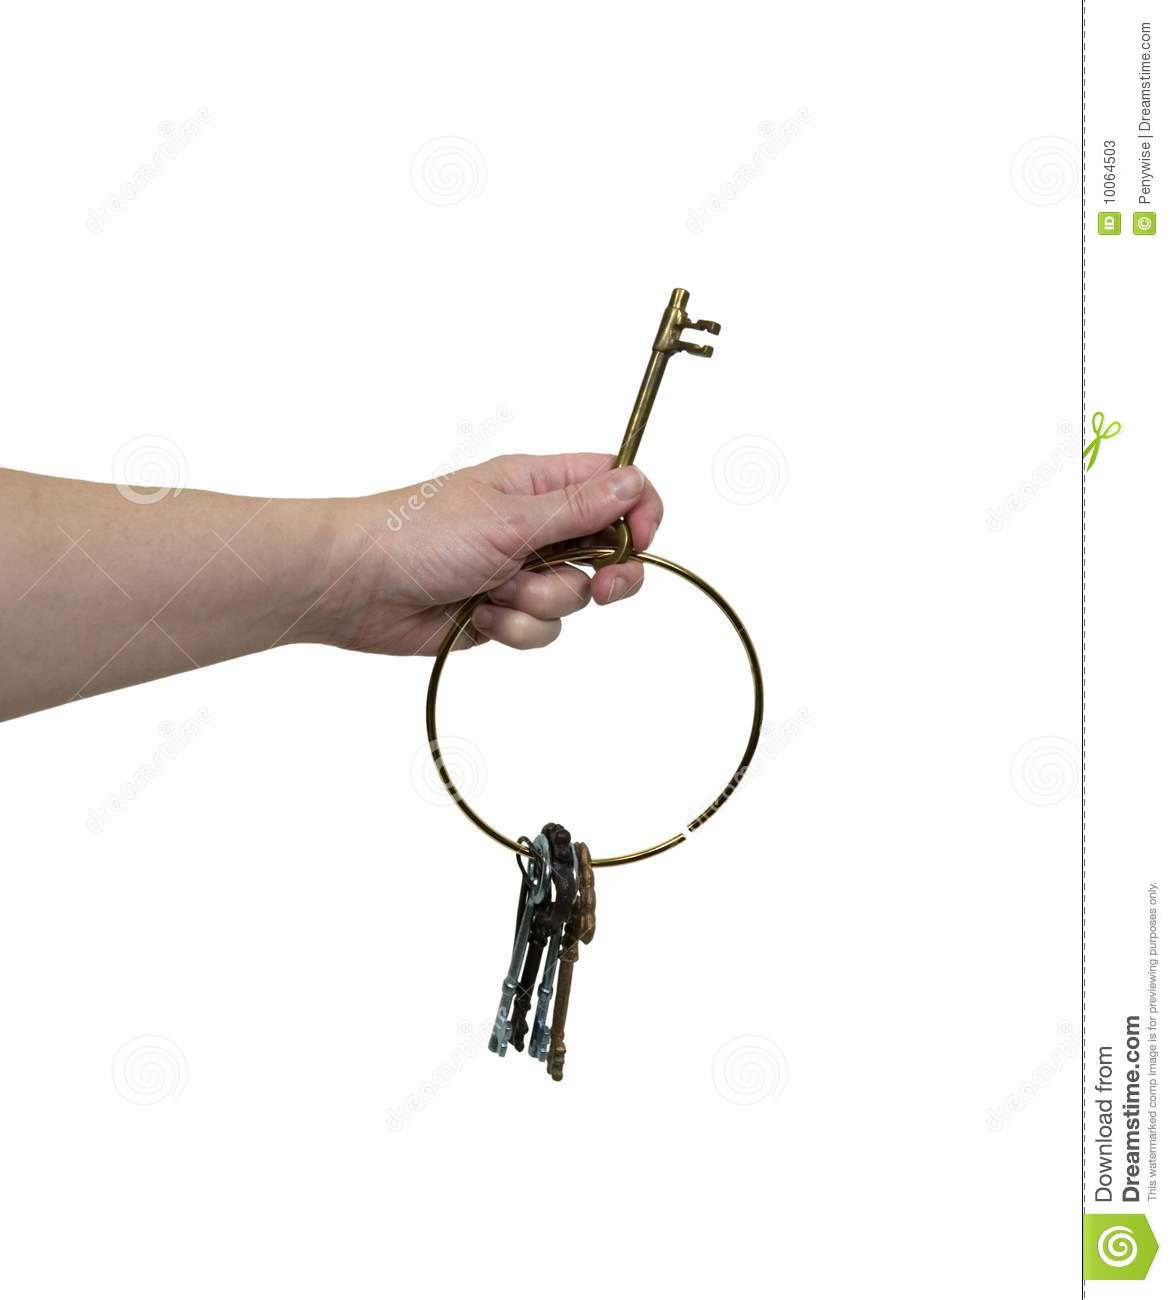 Holding out the key